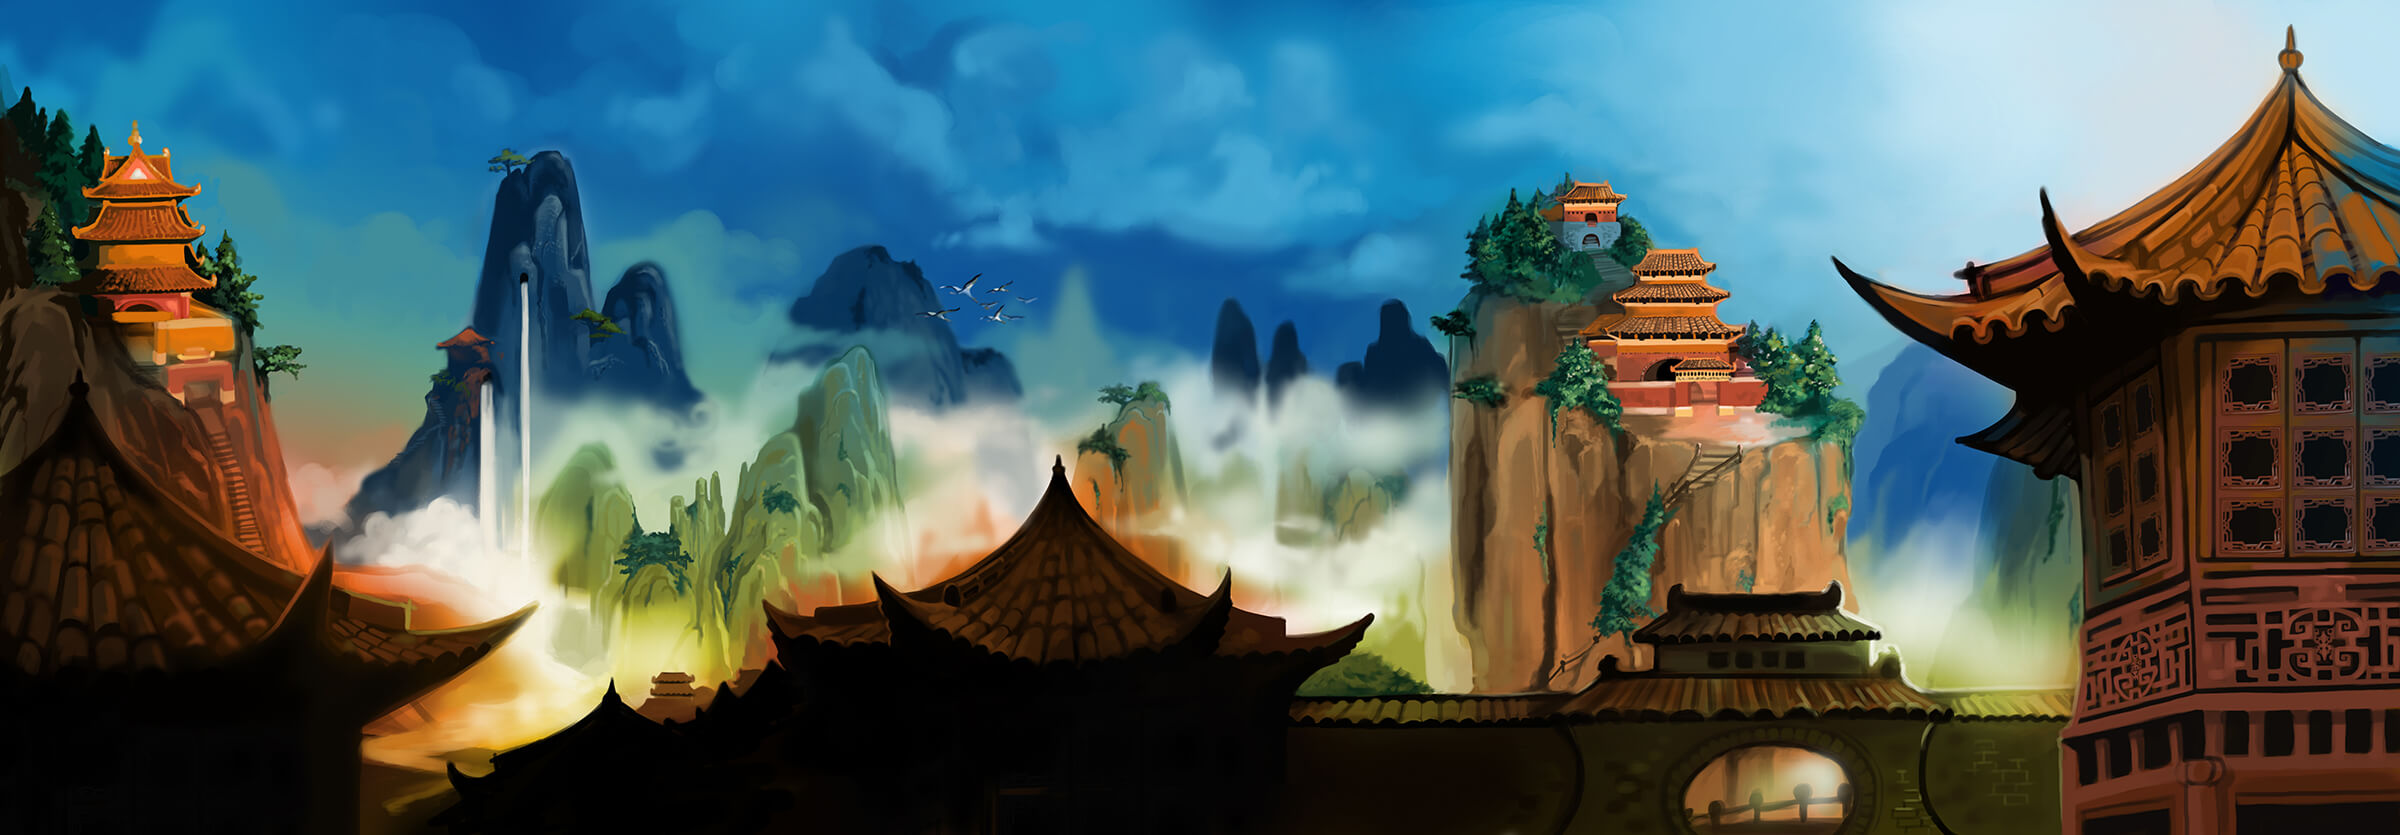 Panoramic landscape of a mountainous region above the clouds. Pagoda-like structures dot various peaks.